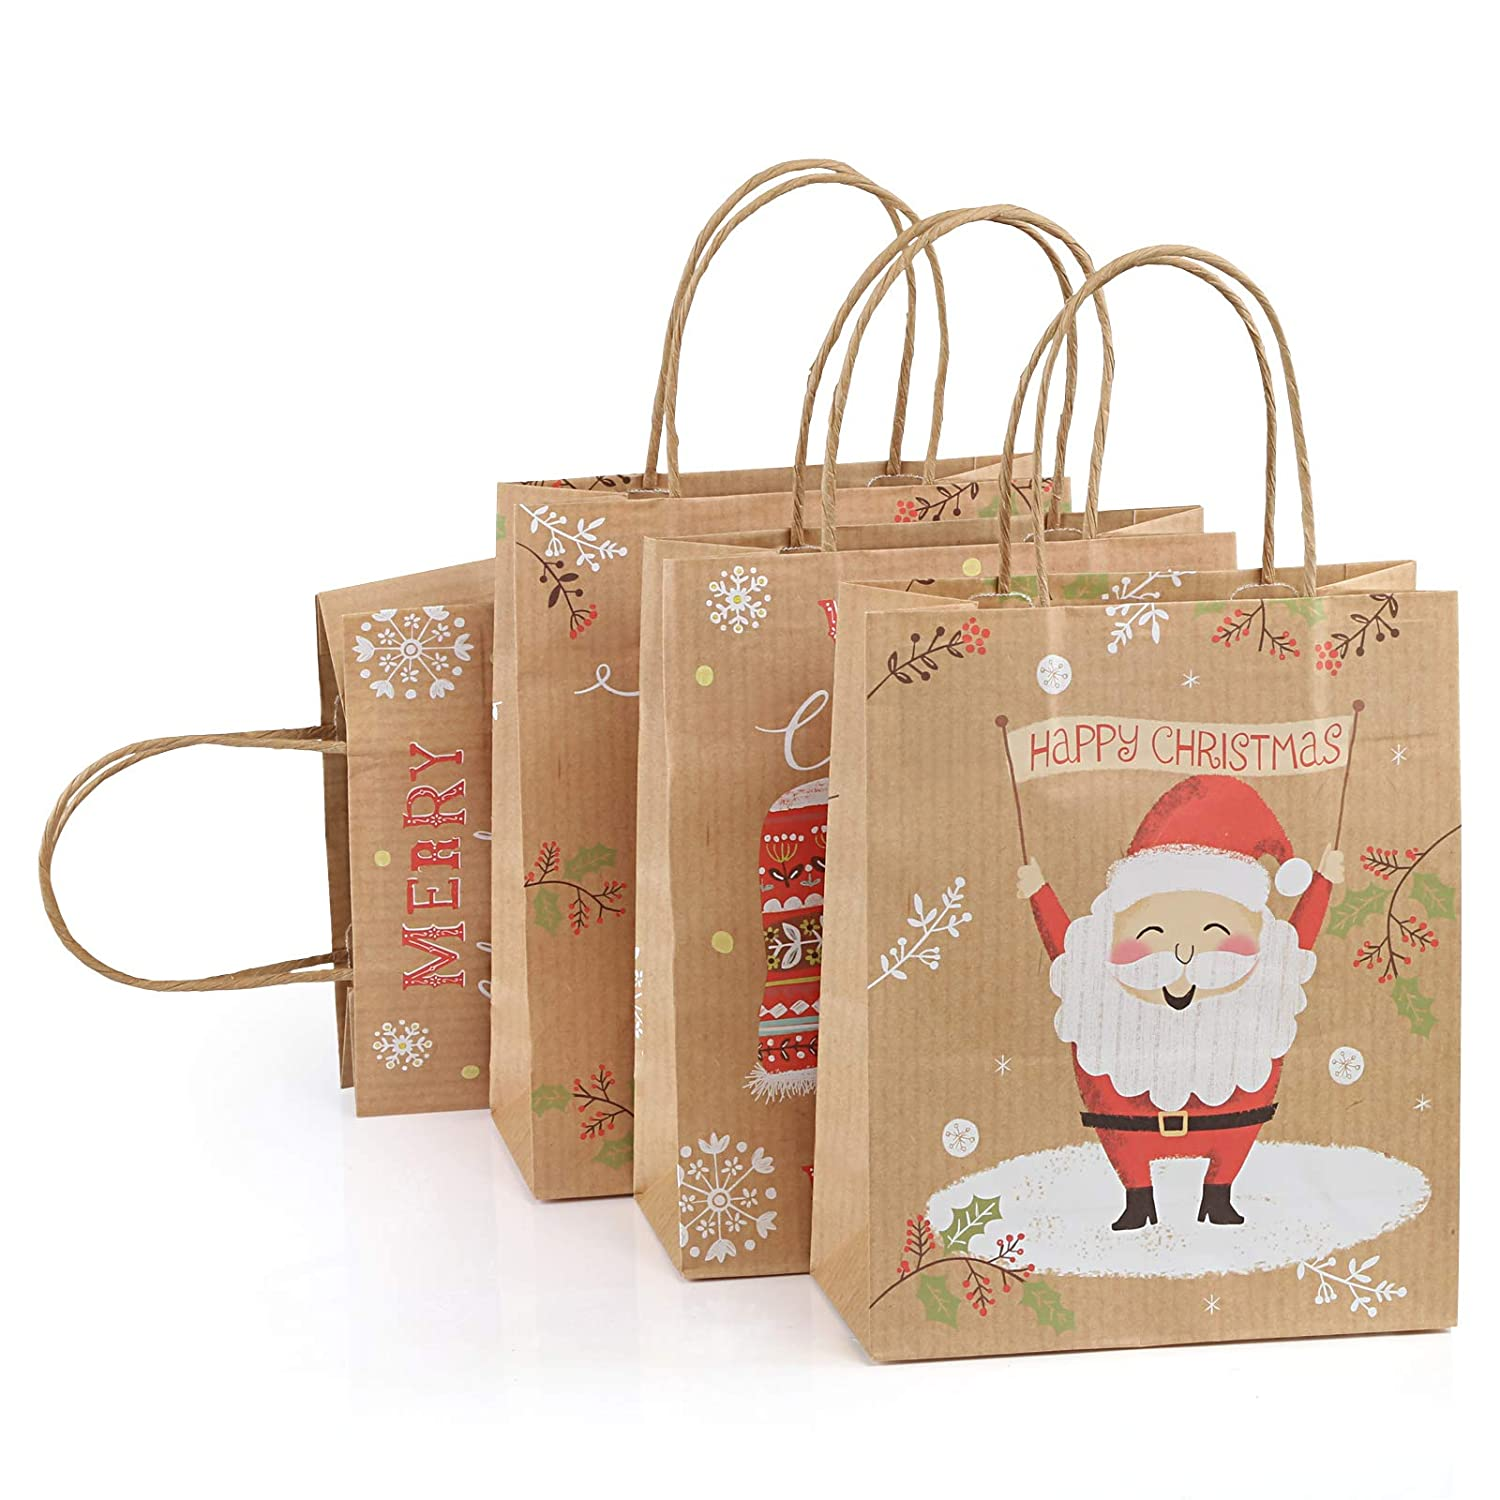 GWHOLE Xmas Paper Bags for Gift Wrapping Wrap Paper Bags Kraft Bags Retail Bags Shopping Bags